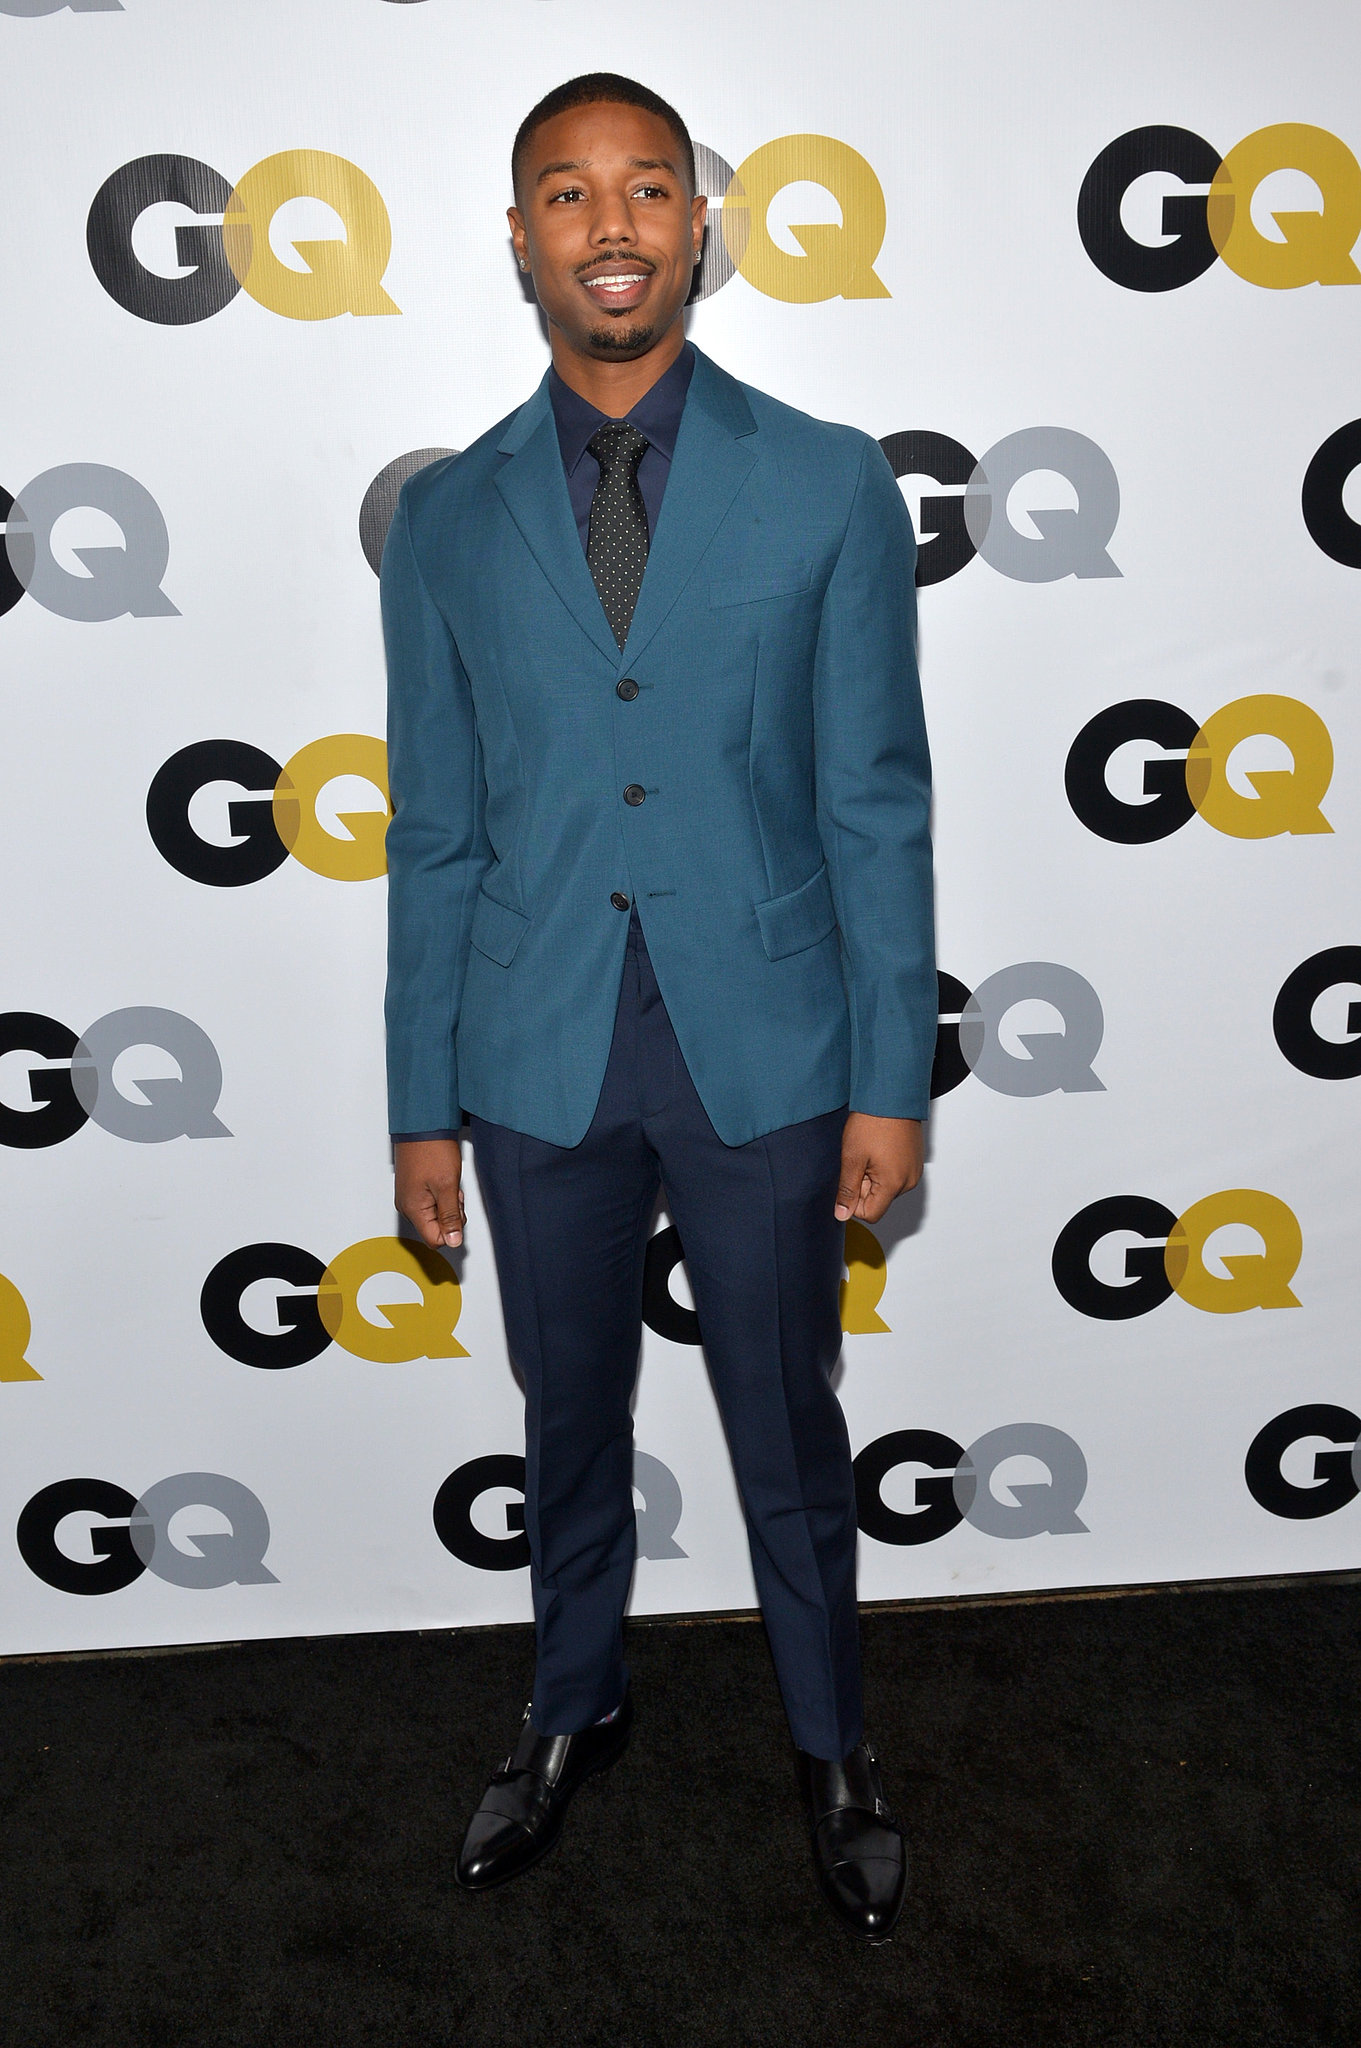 Michael B. Jordan wore shades of blue at the GQ Men of the Year event.